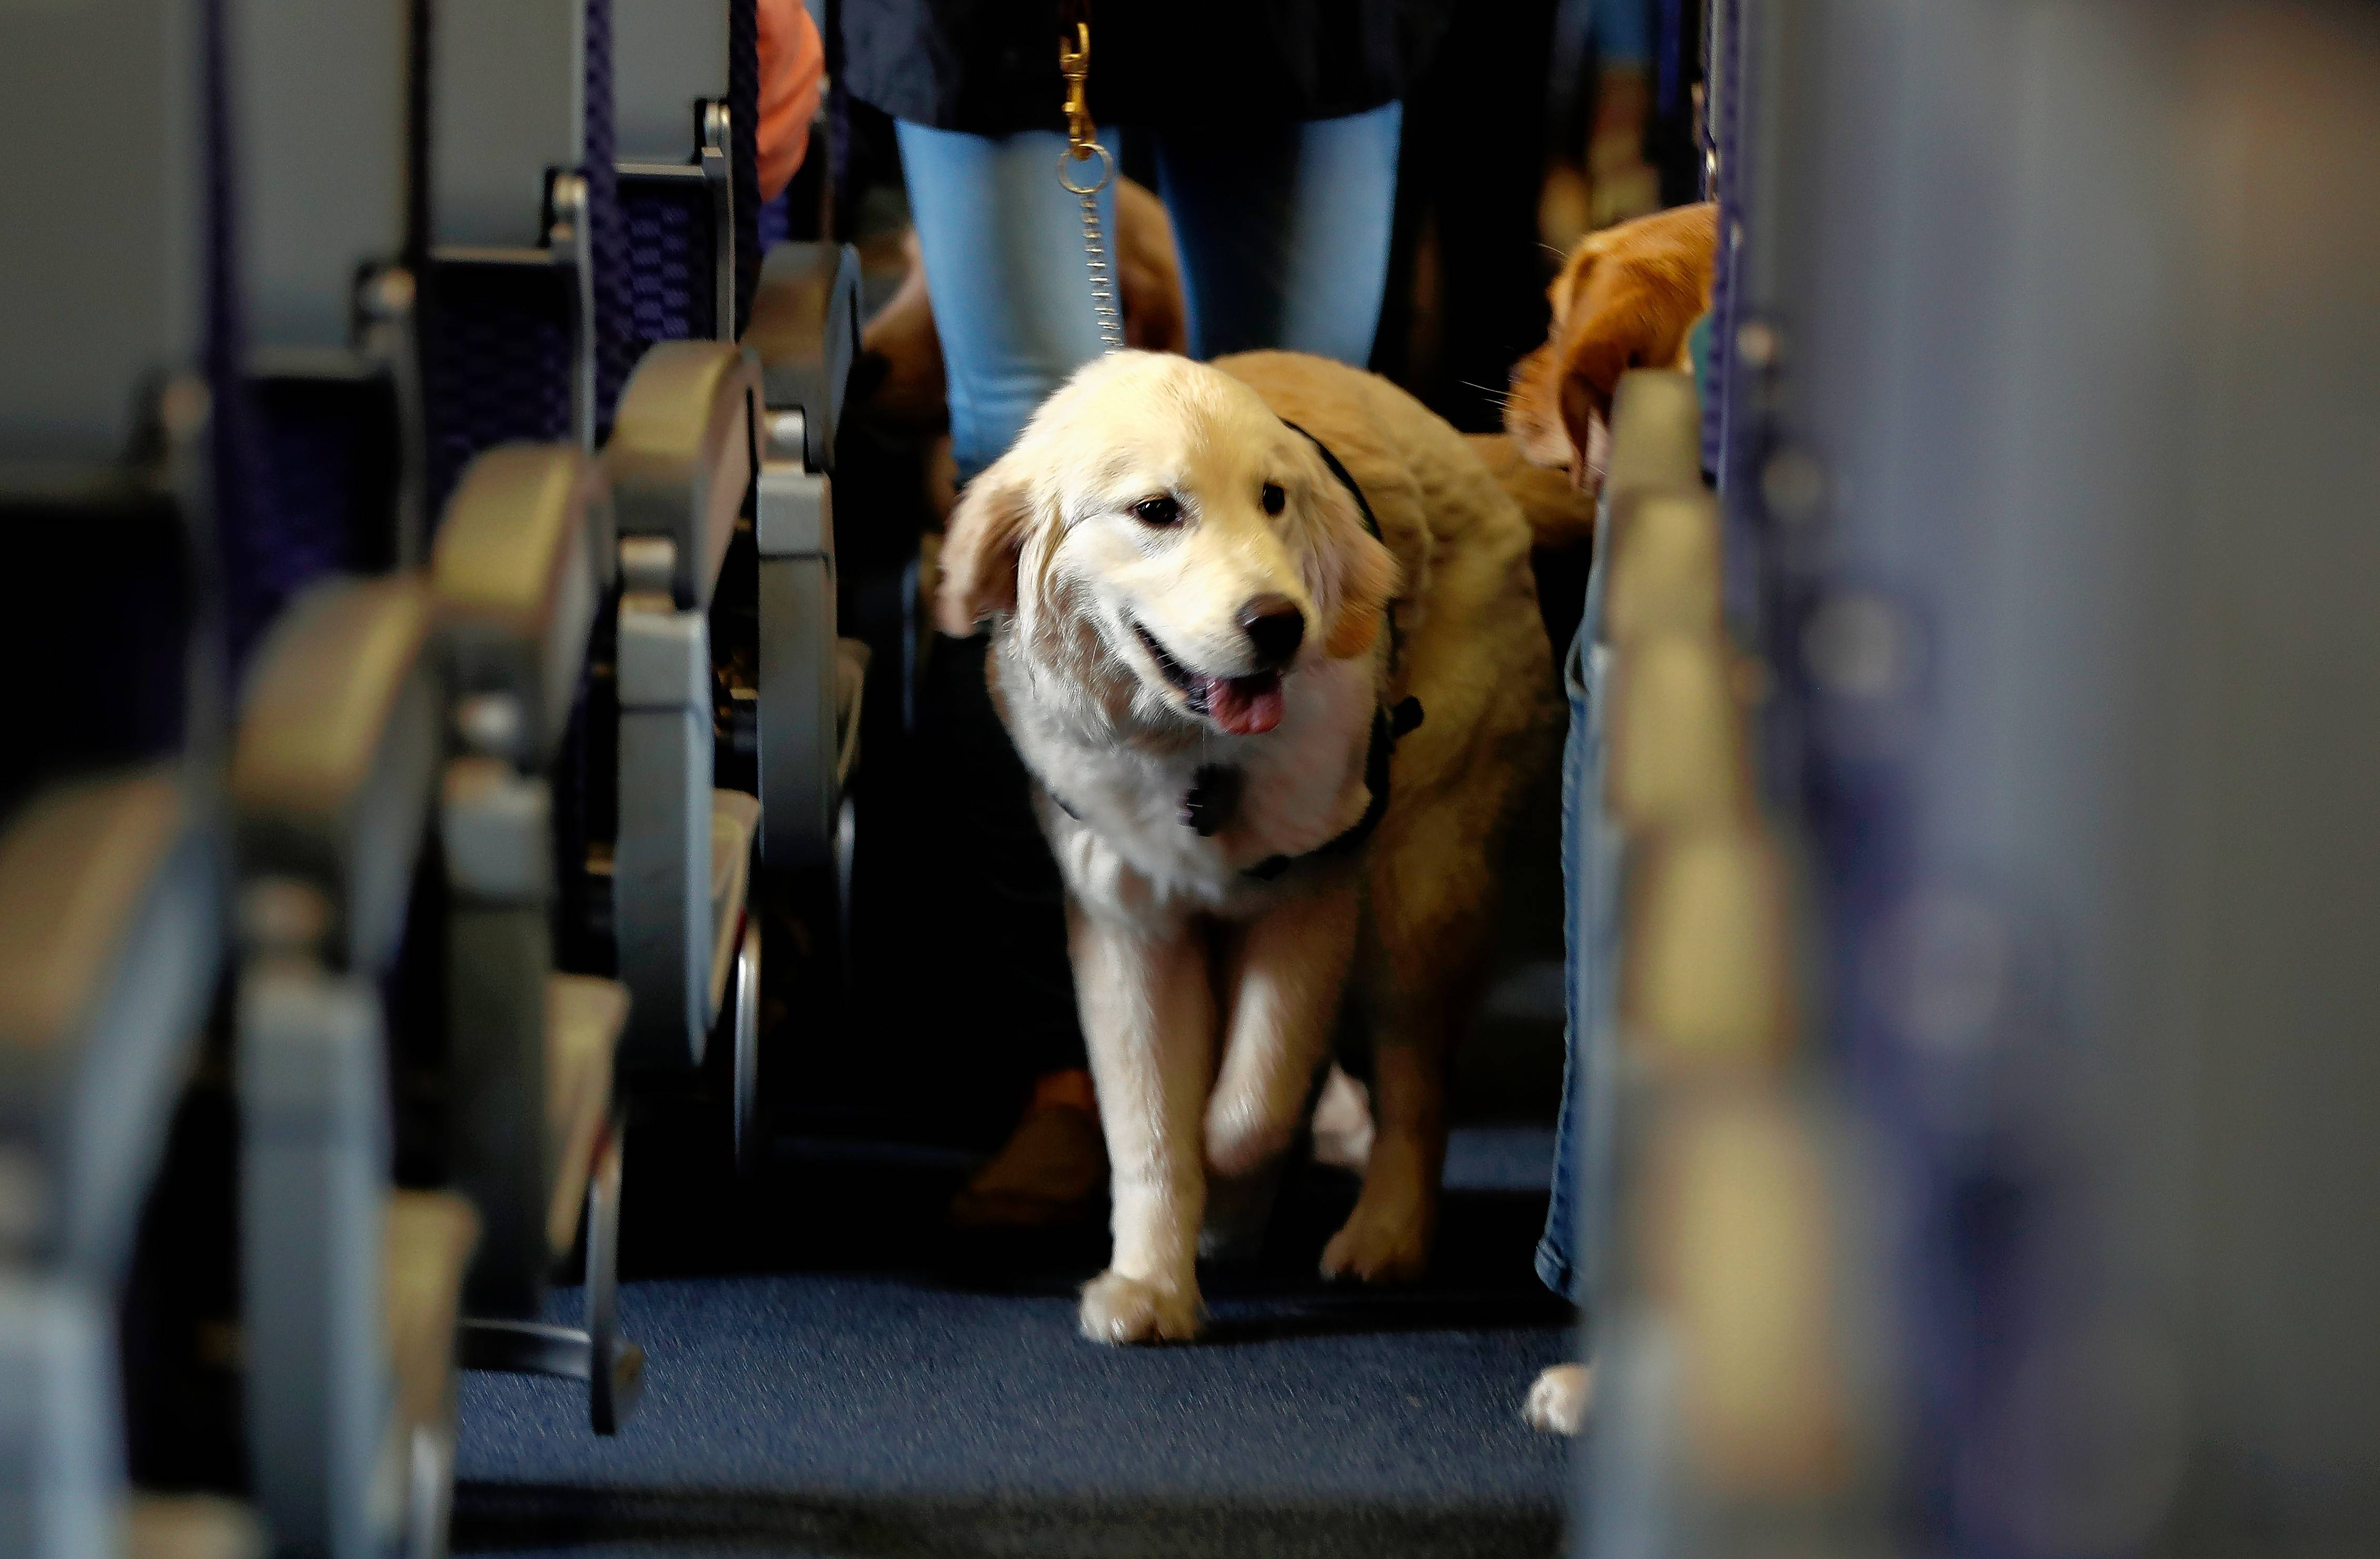 The airline industry currently has a mixture of rules for pets as well as service animals and emotional support animals on flights. United Airlines is increasing requirements for passengers bringing emotional support animals on board flights effective March 1.